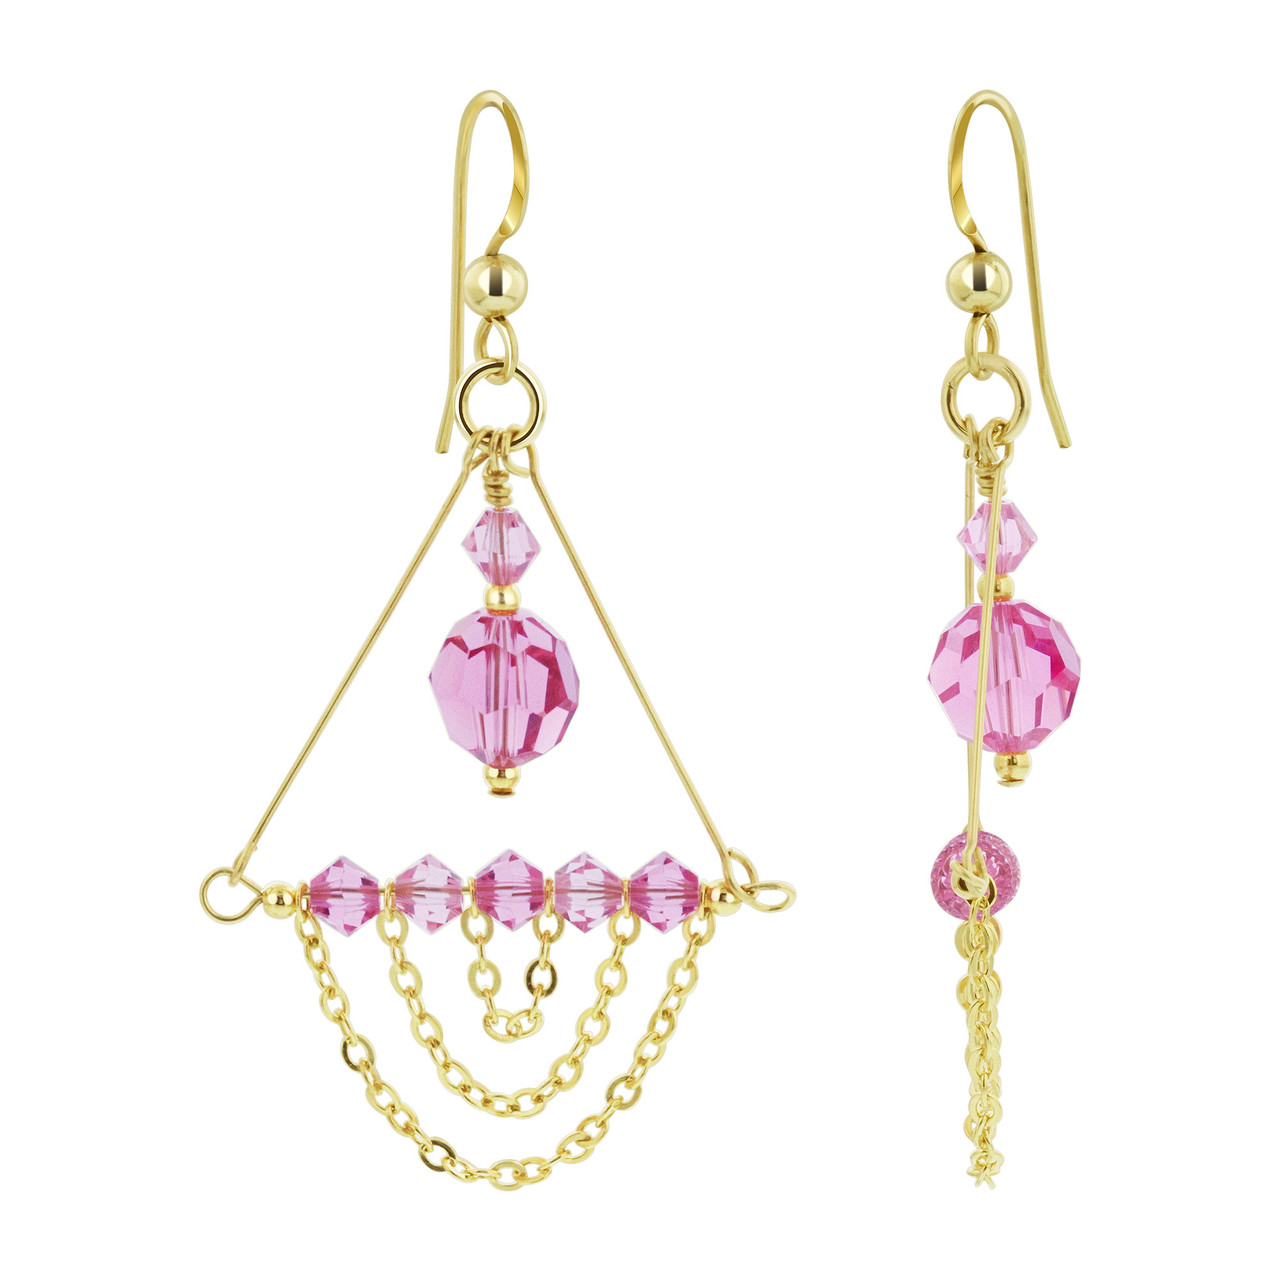 14K Gold Filled Pink Crystal Chandelier Drop Earrings